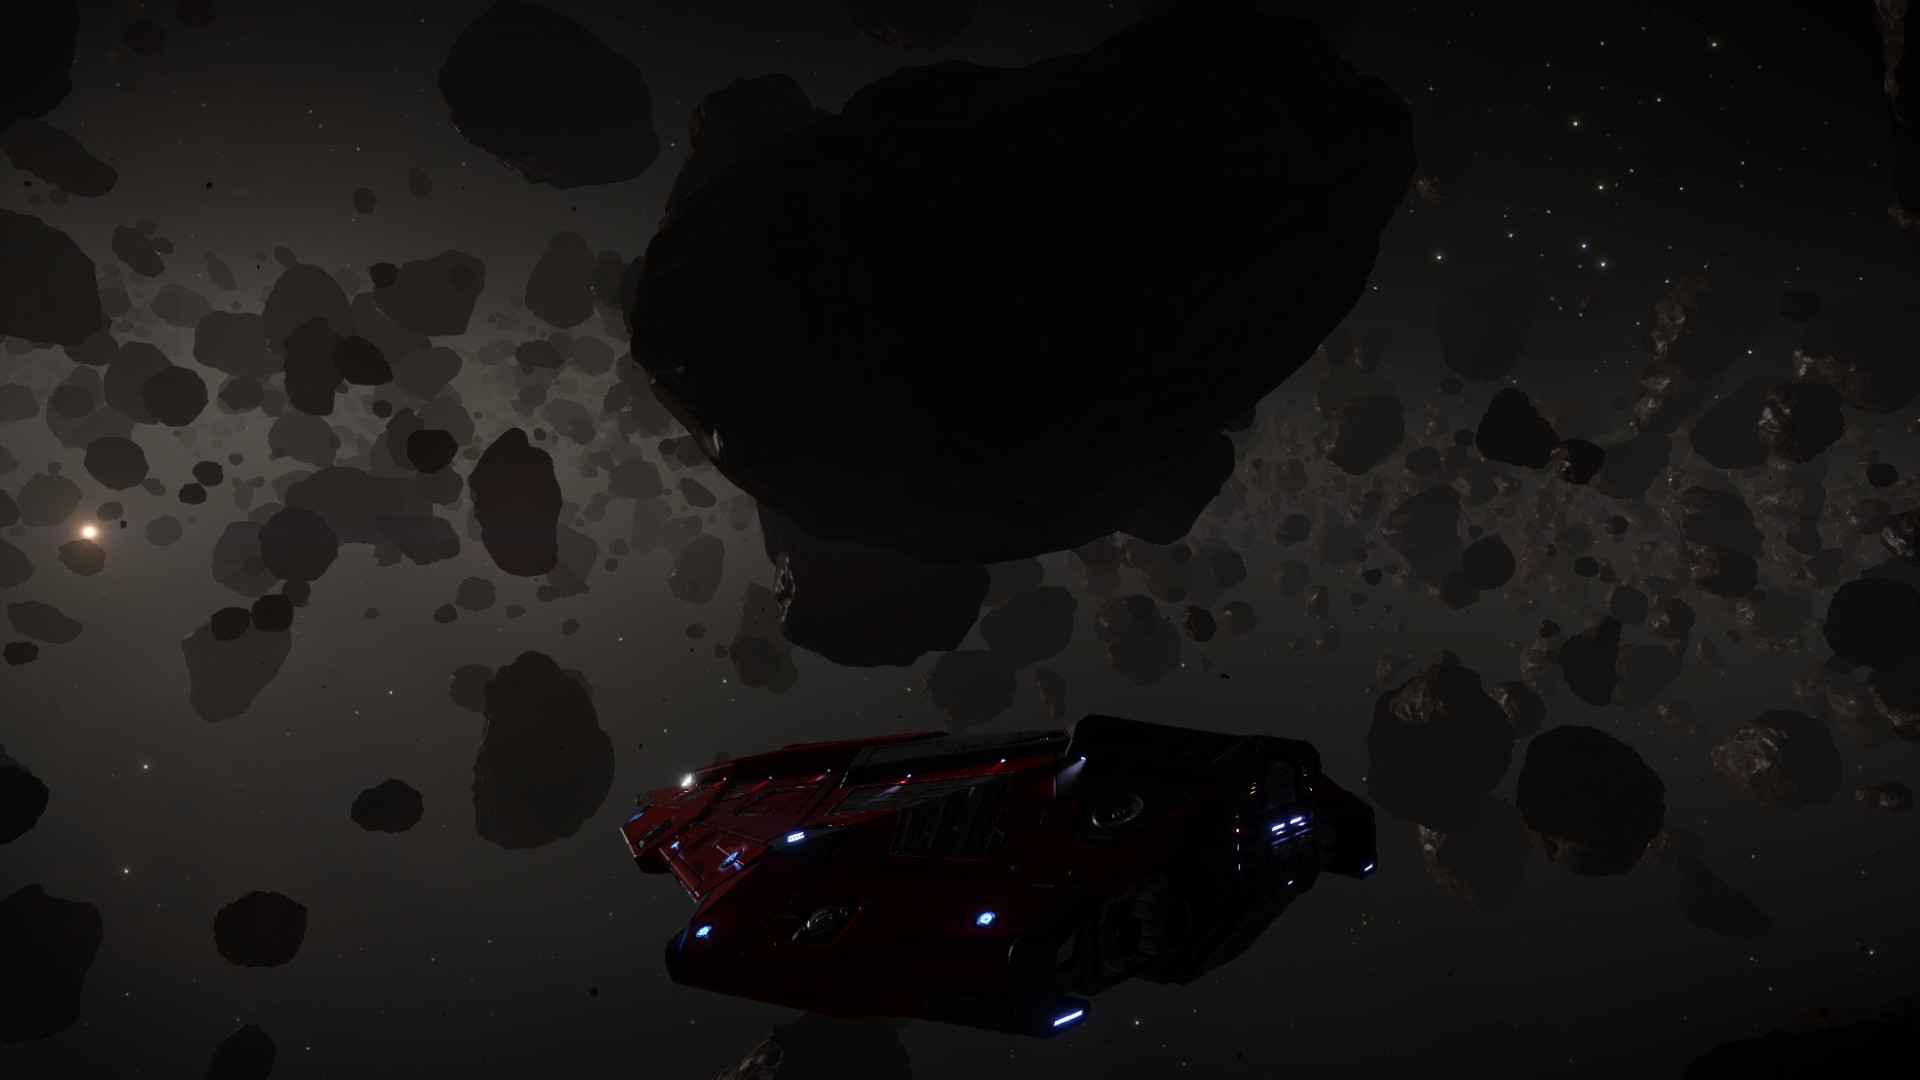 Elite Dangerous] – Mining adventures (Intermission) « The Lair of